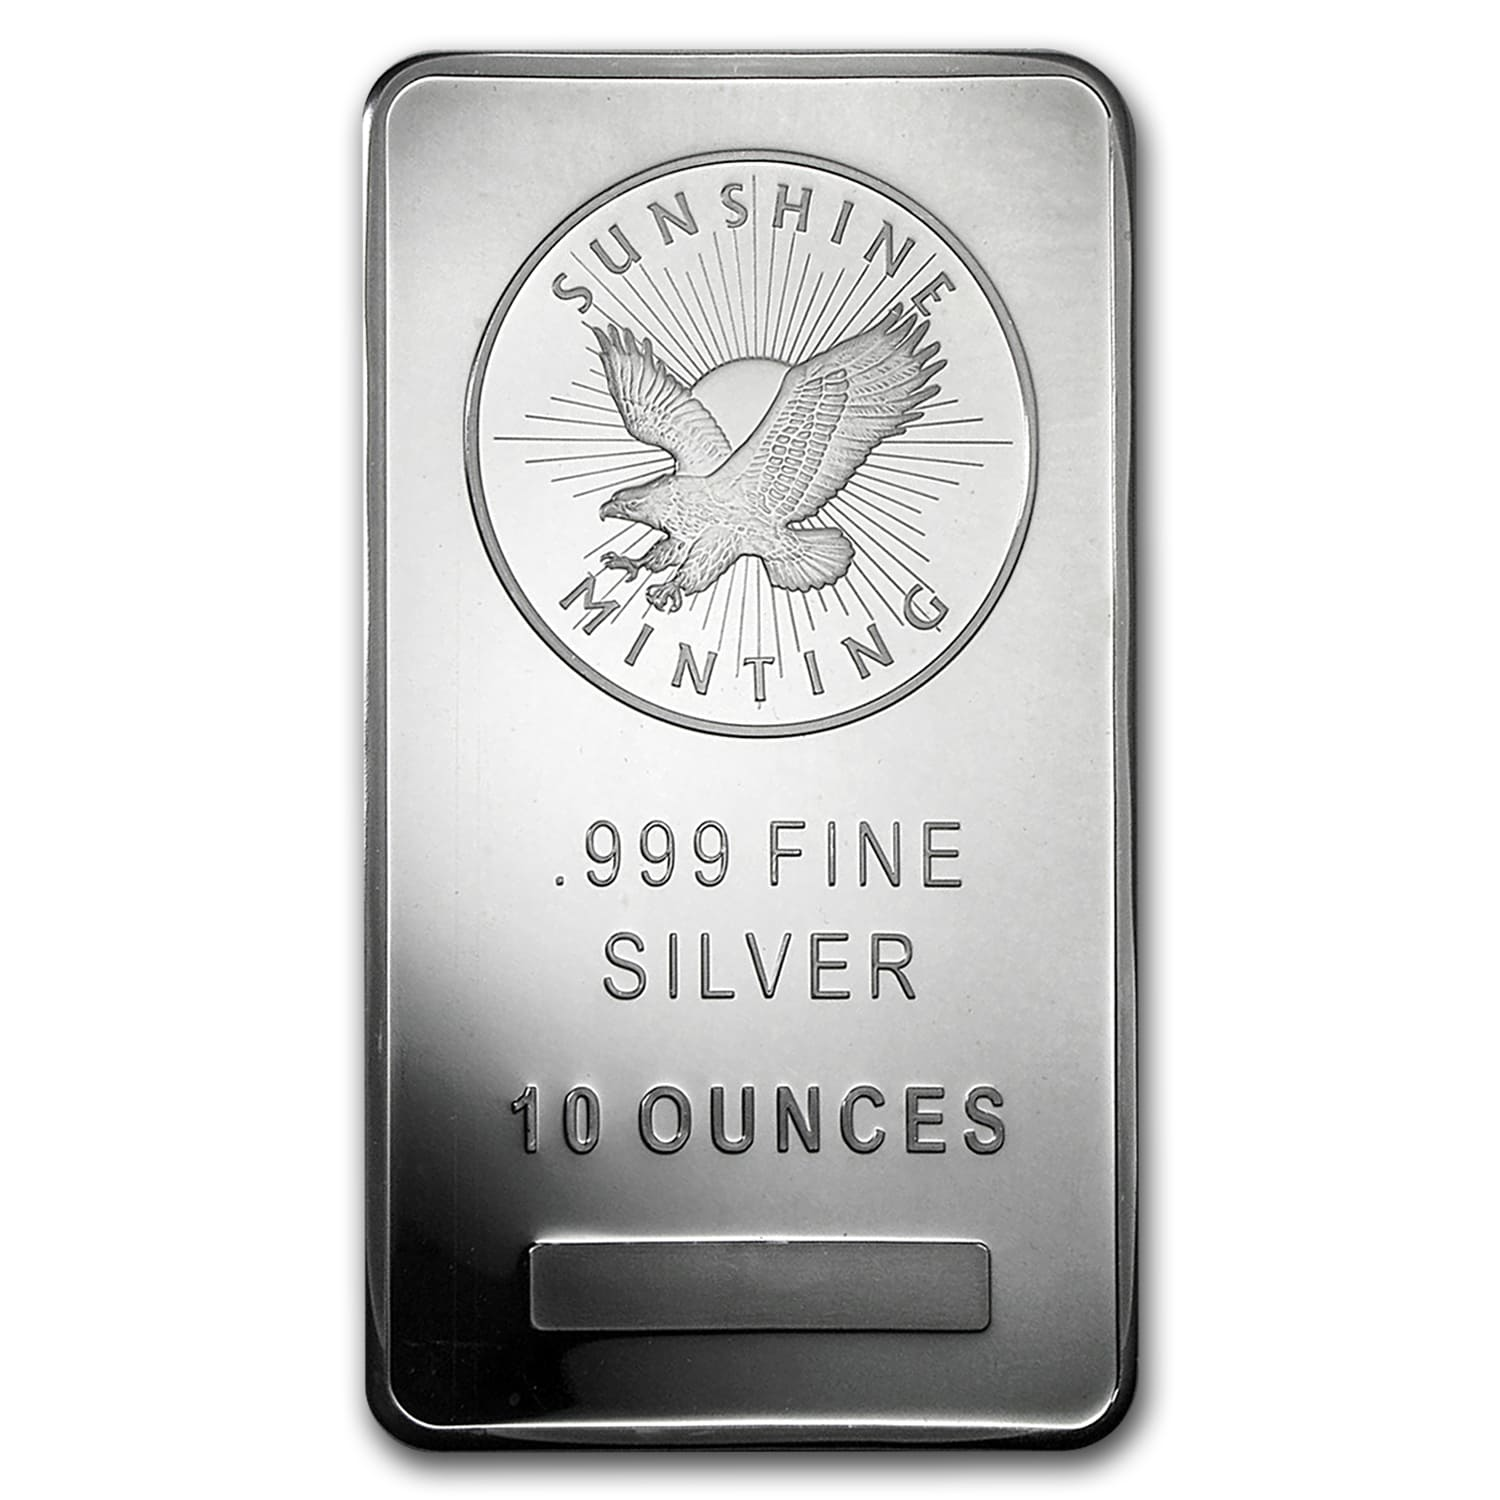 10 oz Silver Bars - Sunshine (V2)